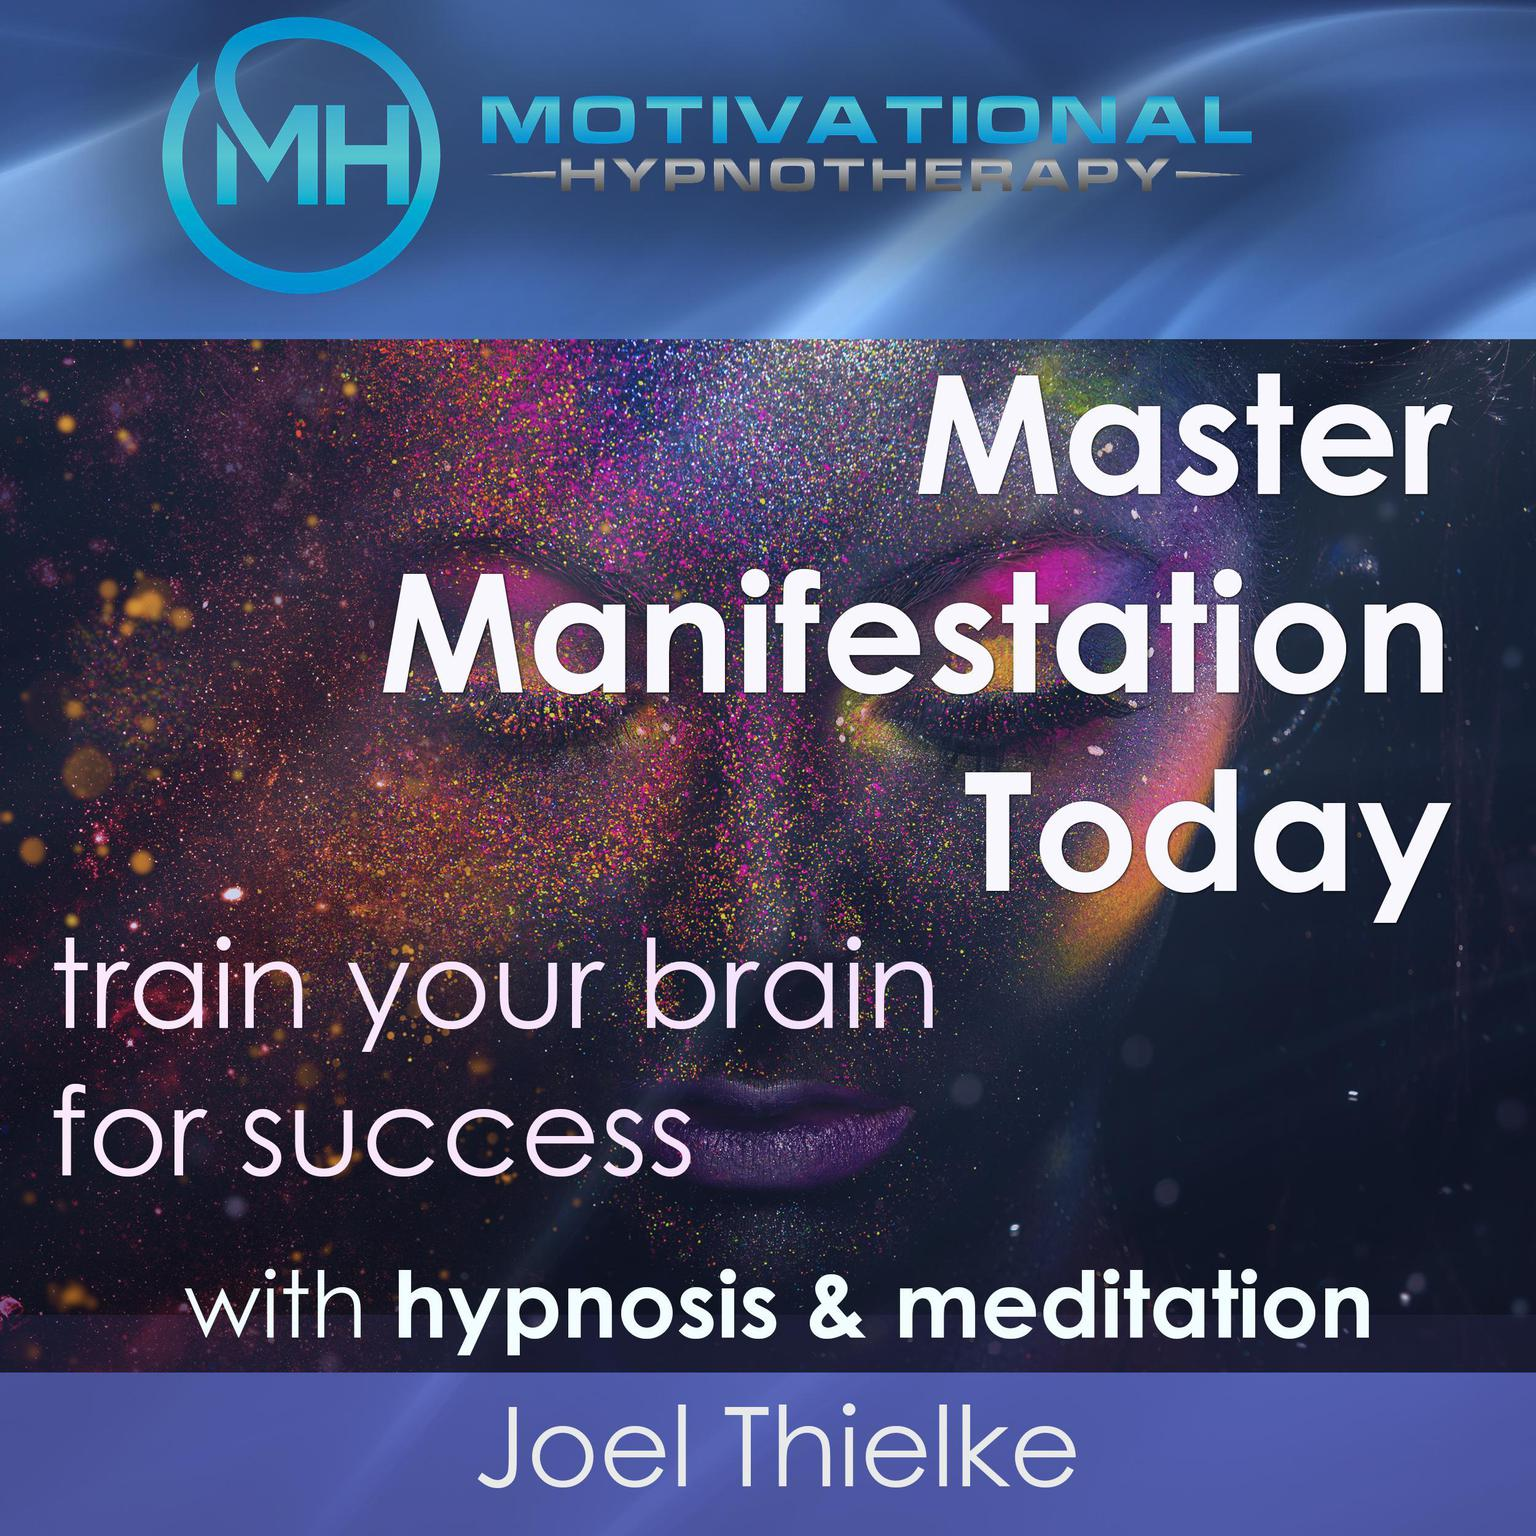 Master Manifestation Today, Train Your Brain for Success with Meditation & Hypnosis Audiobook, by Joel Thielke